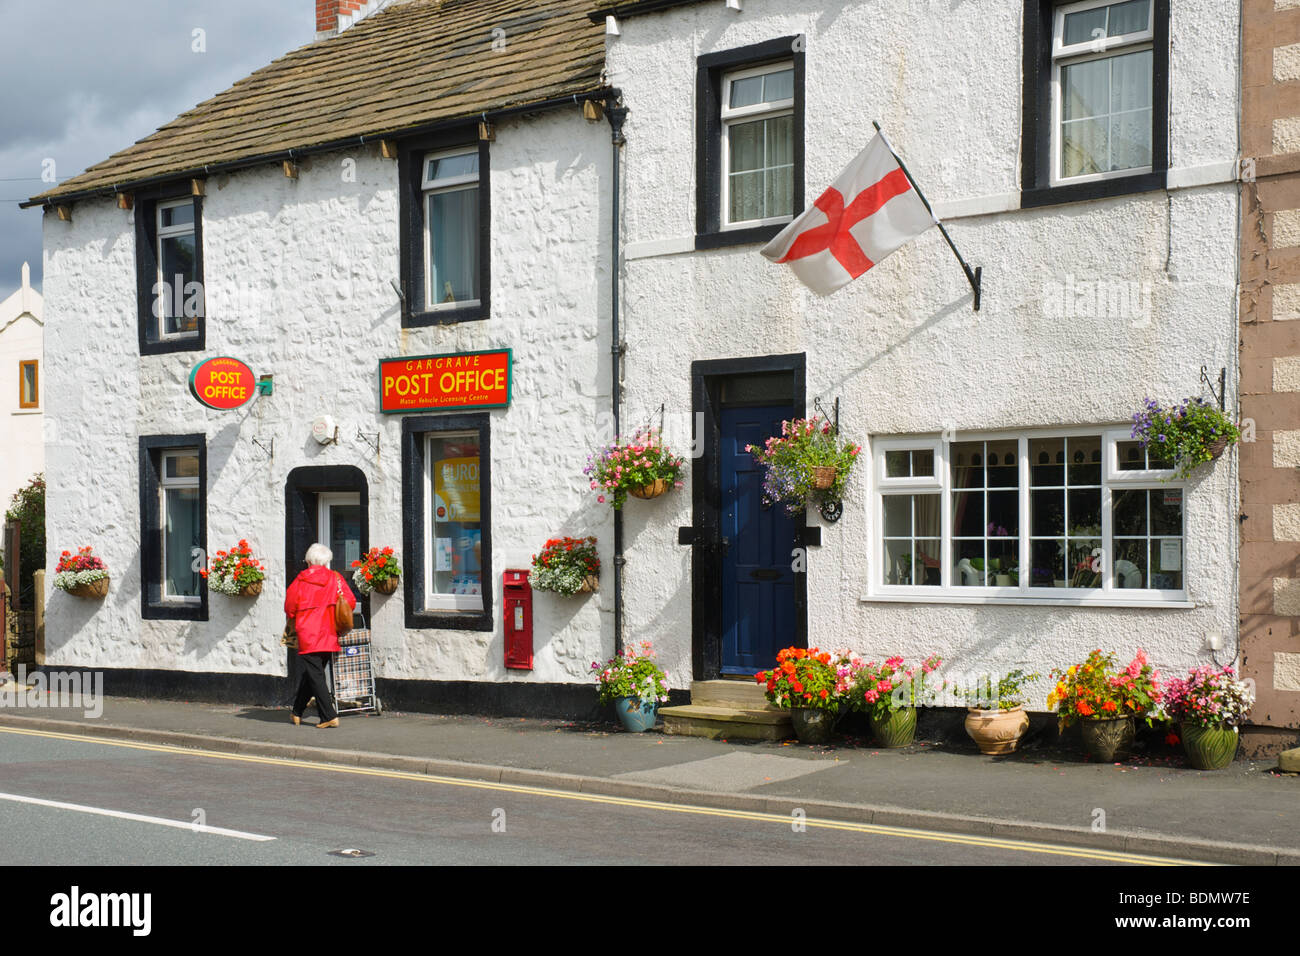 Old lady with shopping trolley at Gargrave Post Office, North Yorkshire, England, UK - Stock Image